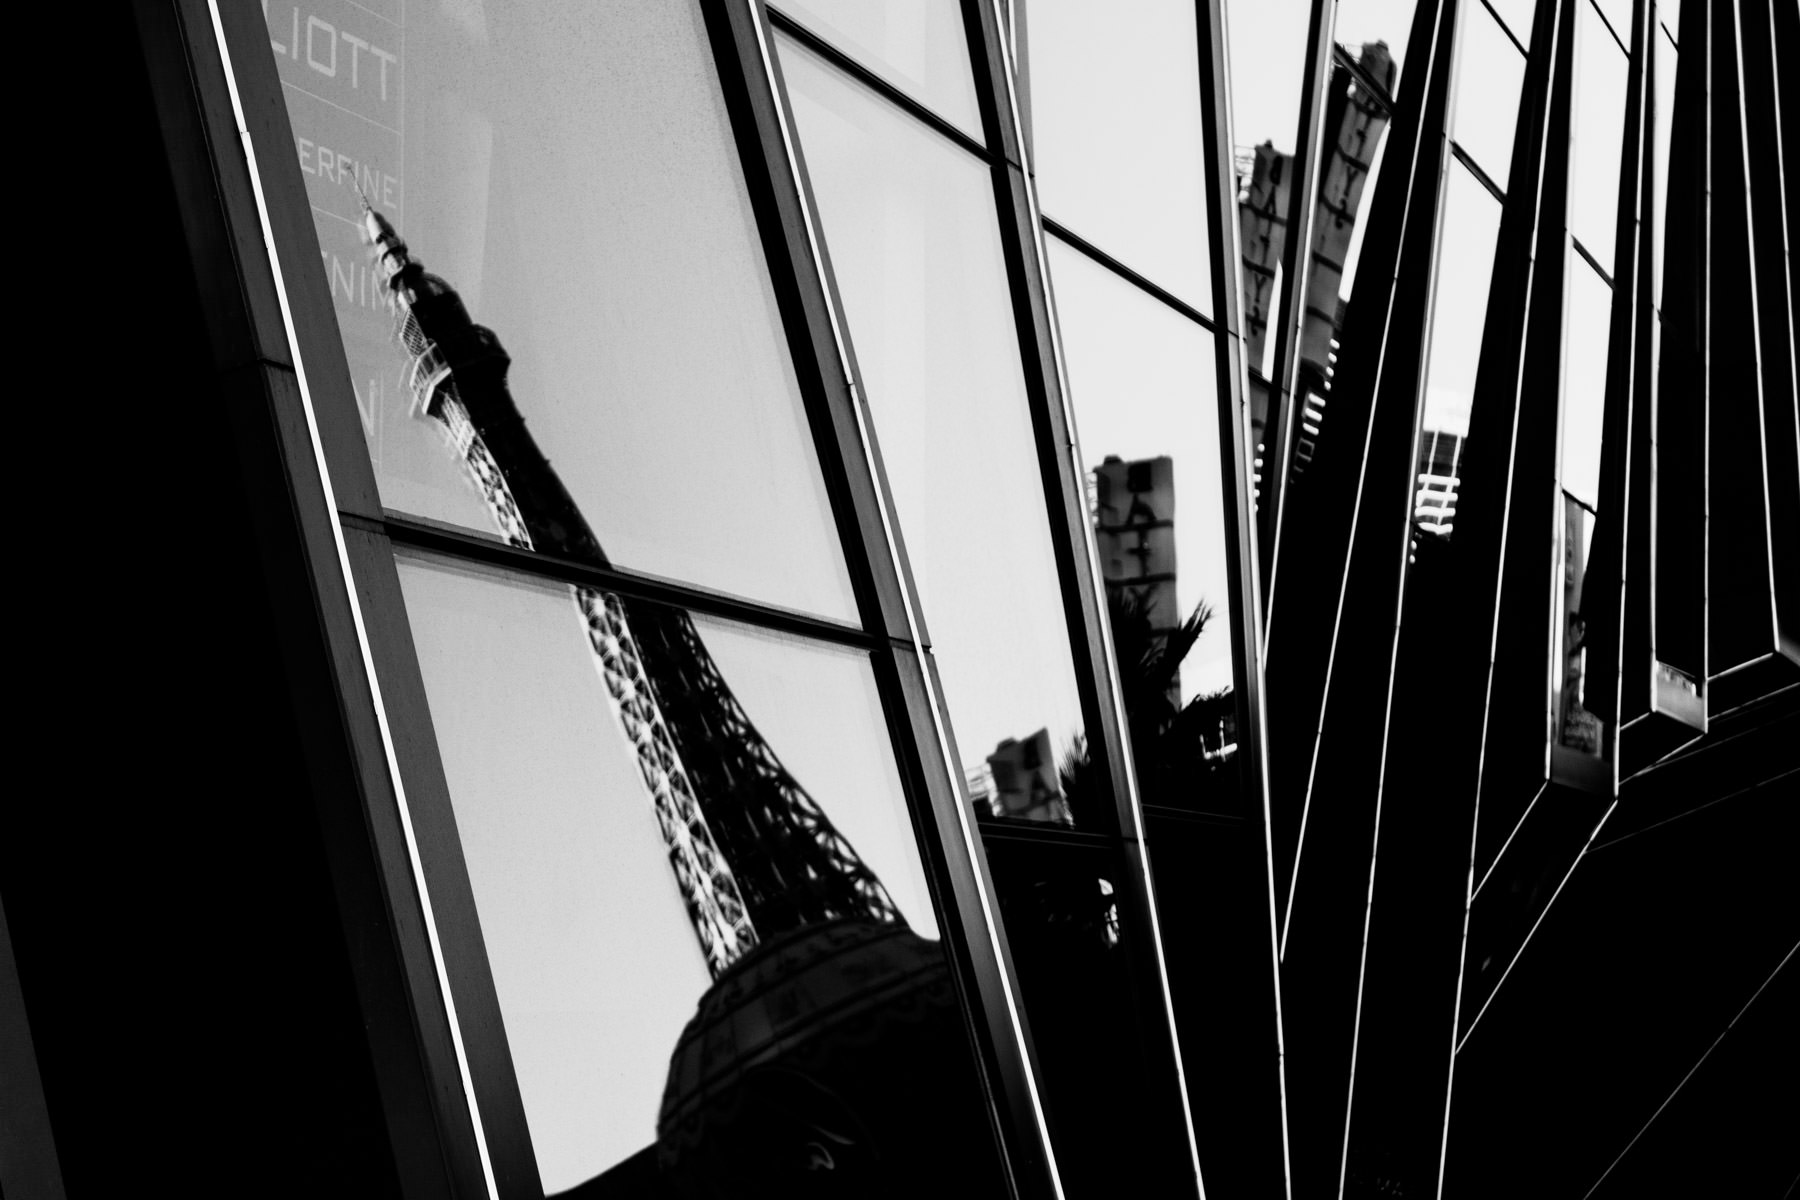 Paris Hotel & Casino's faux Eiffel Tower reflected in the glass facade of the Cosmopolitan of Las Vegas.